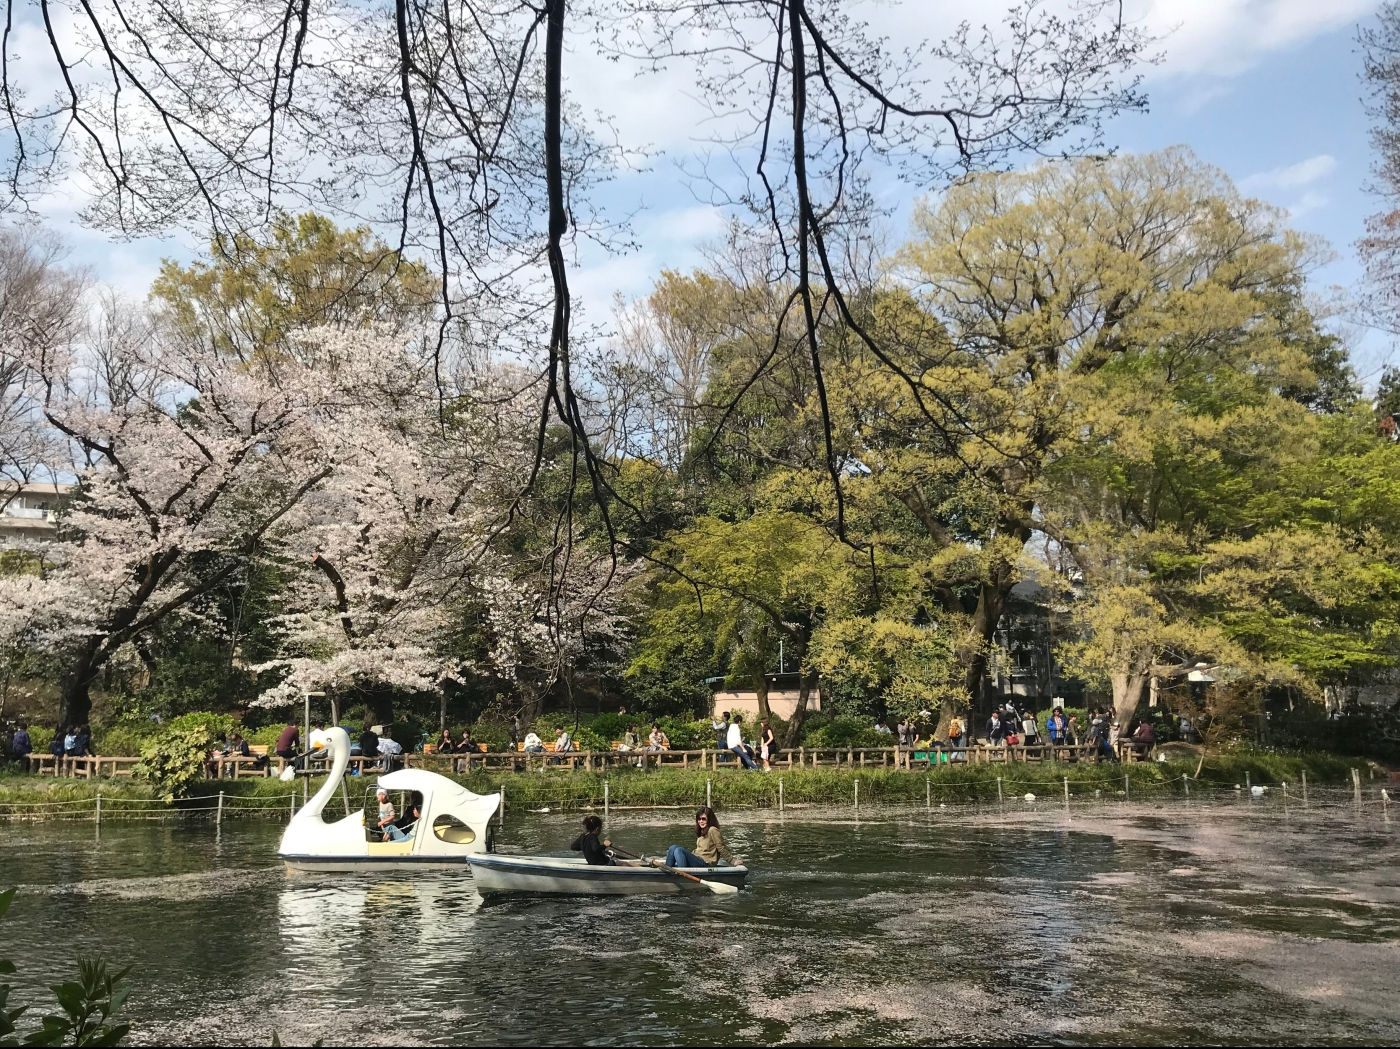 Boaters enjoy an outing on a lake in Japan.